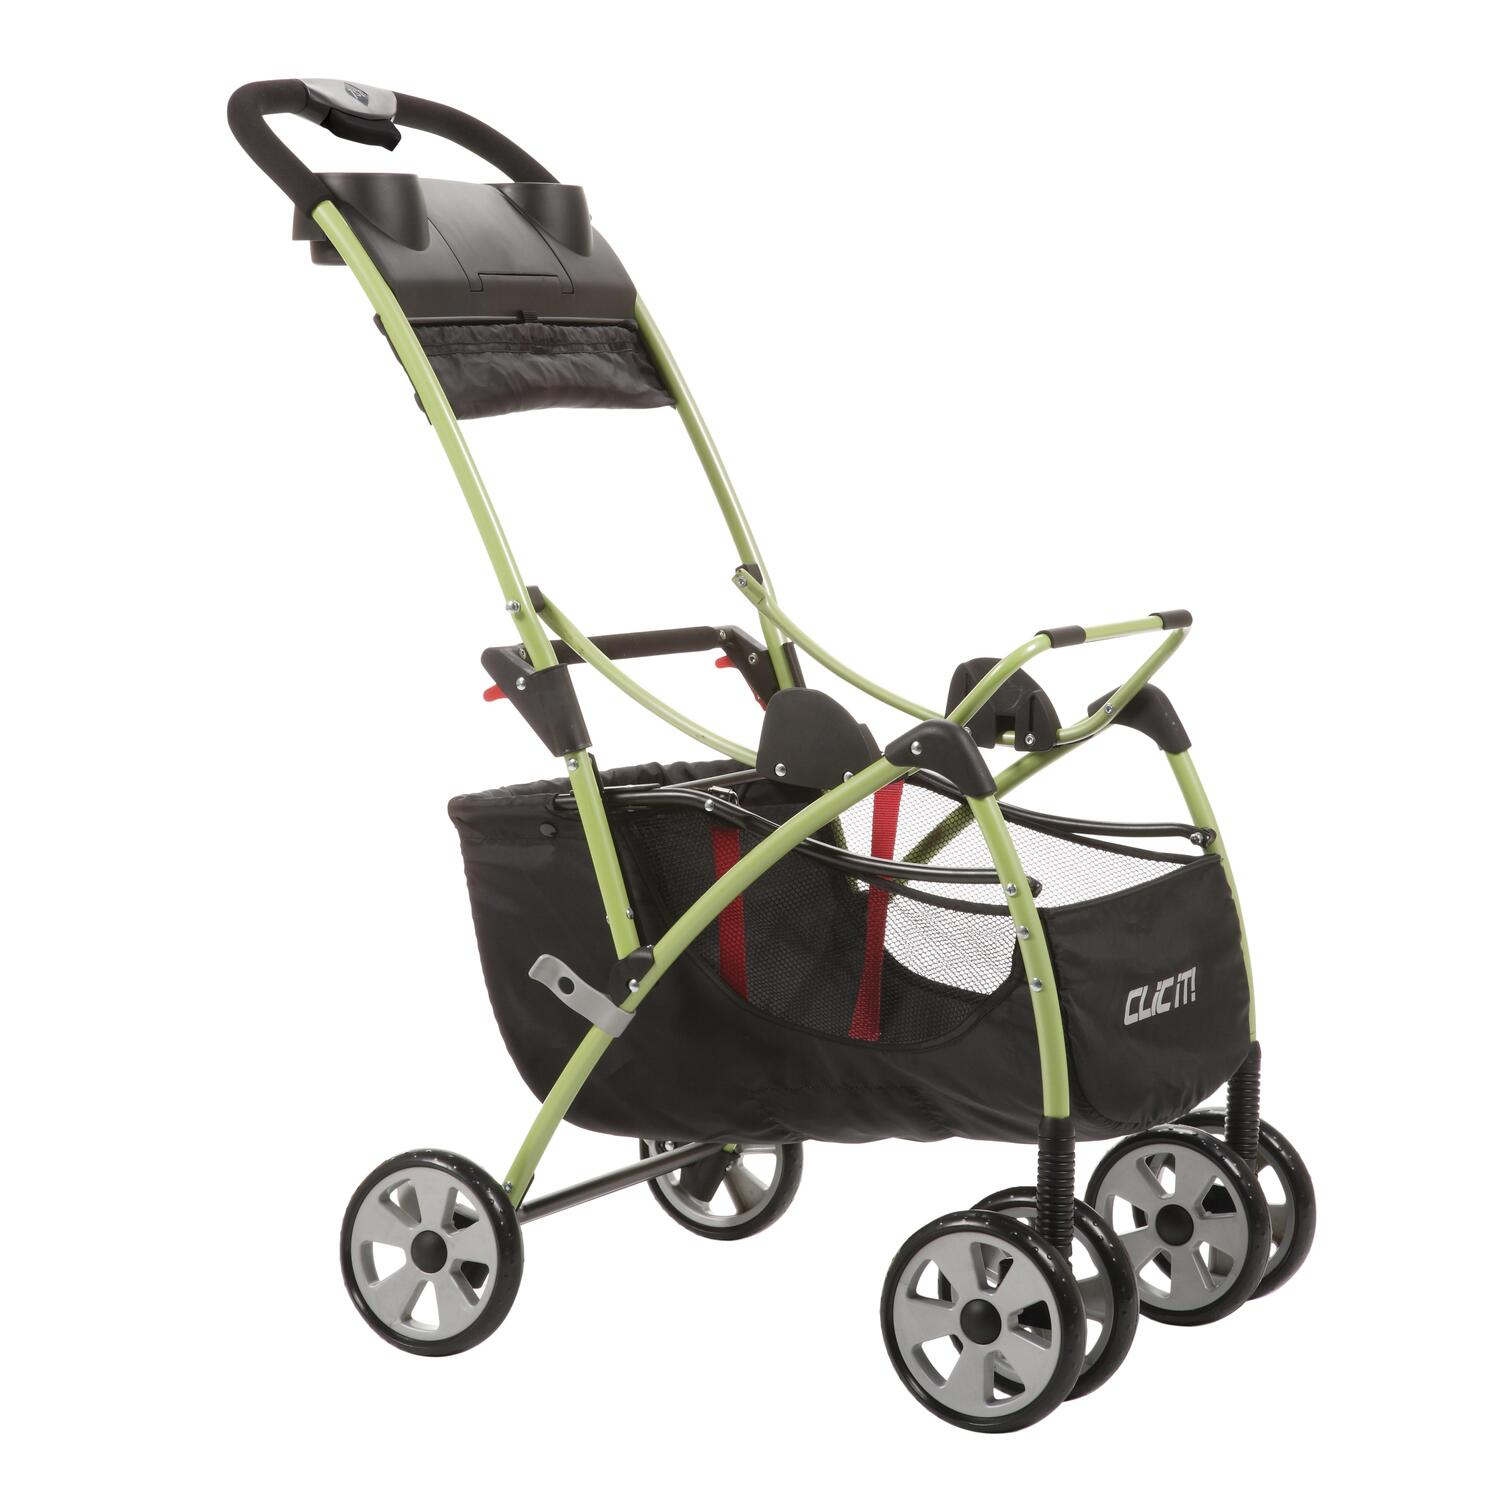 Safety 1st® CV140AUO Safety 1st® Clic It! Infant Seat Carrier (Green)